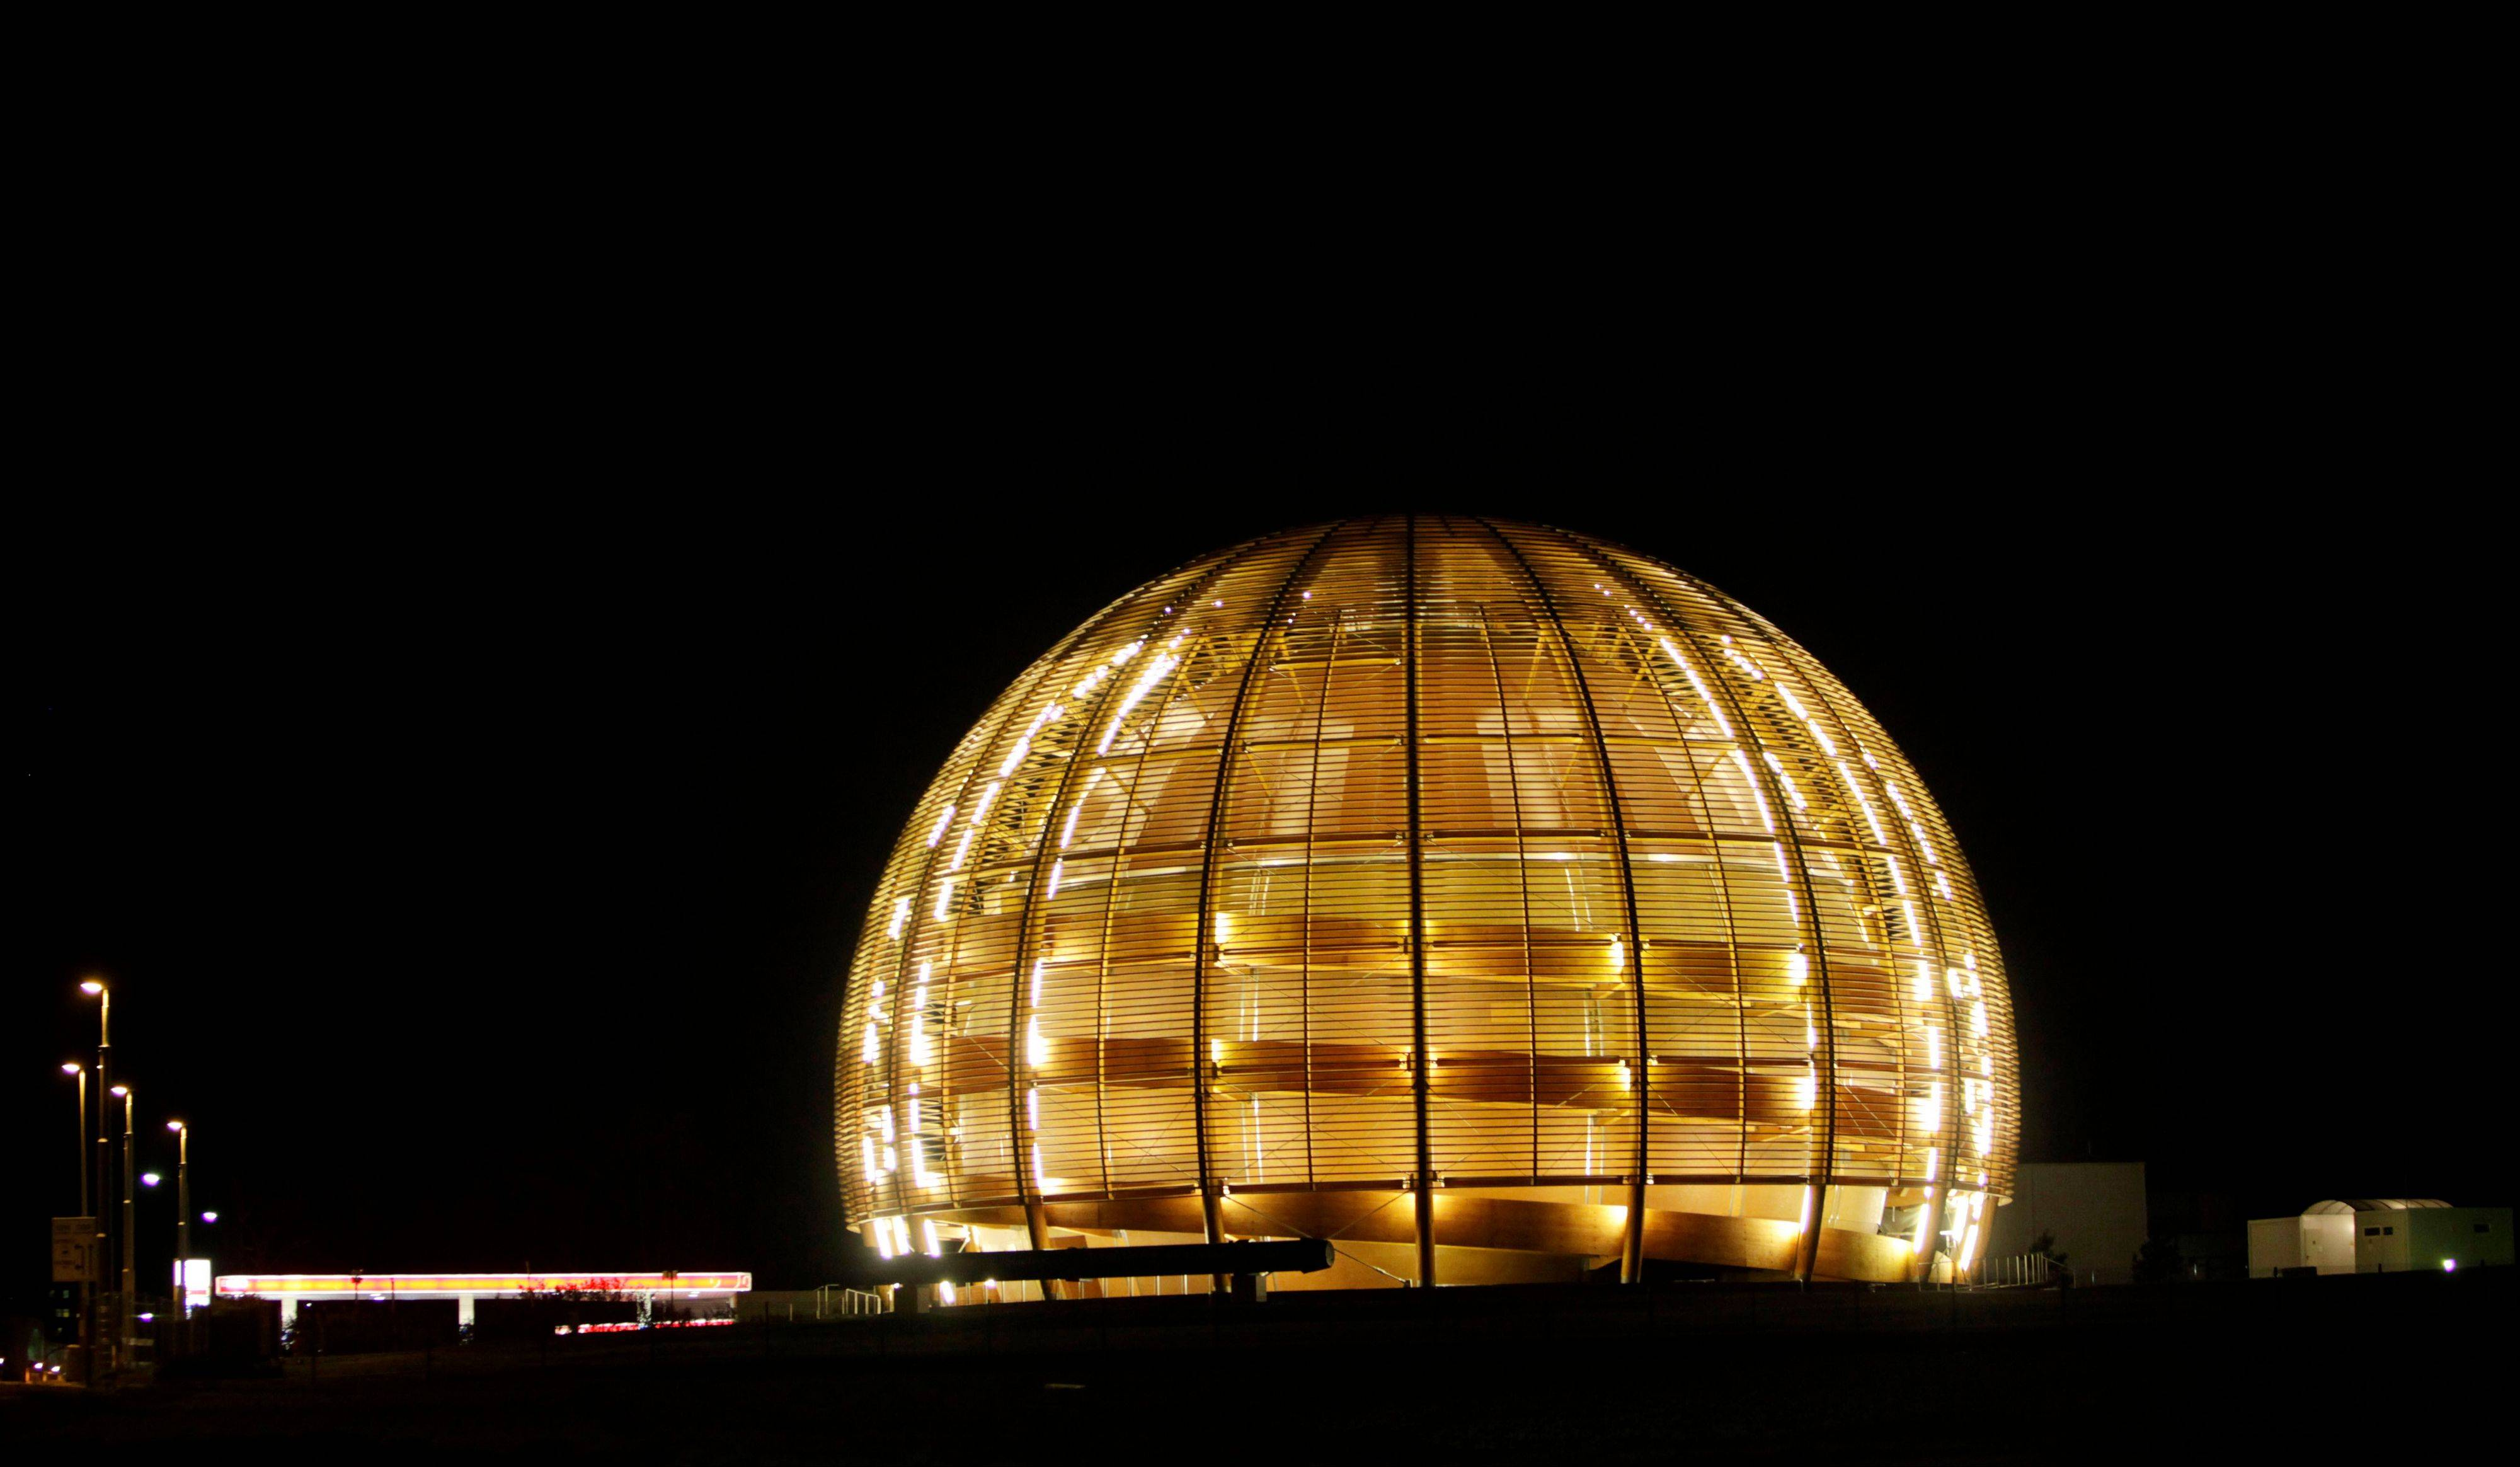 Associated Press/March 30, 2010The globe of the European Organization for Nuclear Research, CERN, is illuminated outside Geneva, Switzerland.